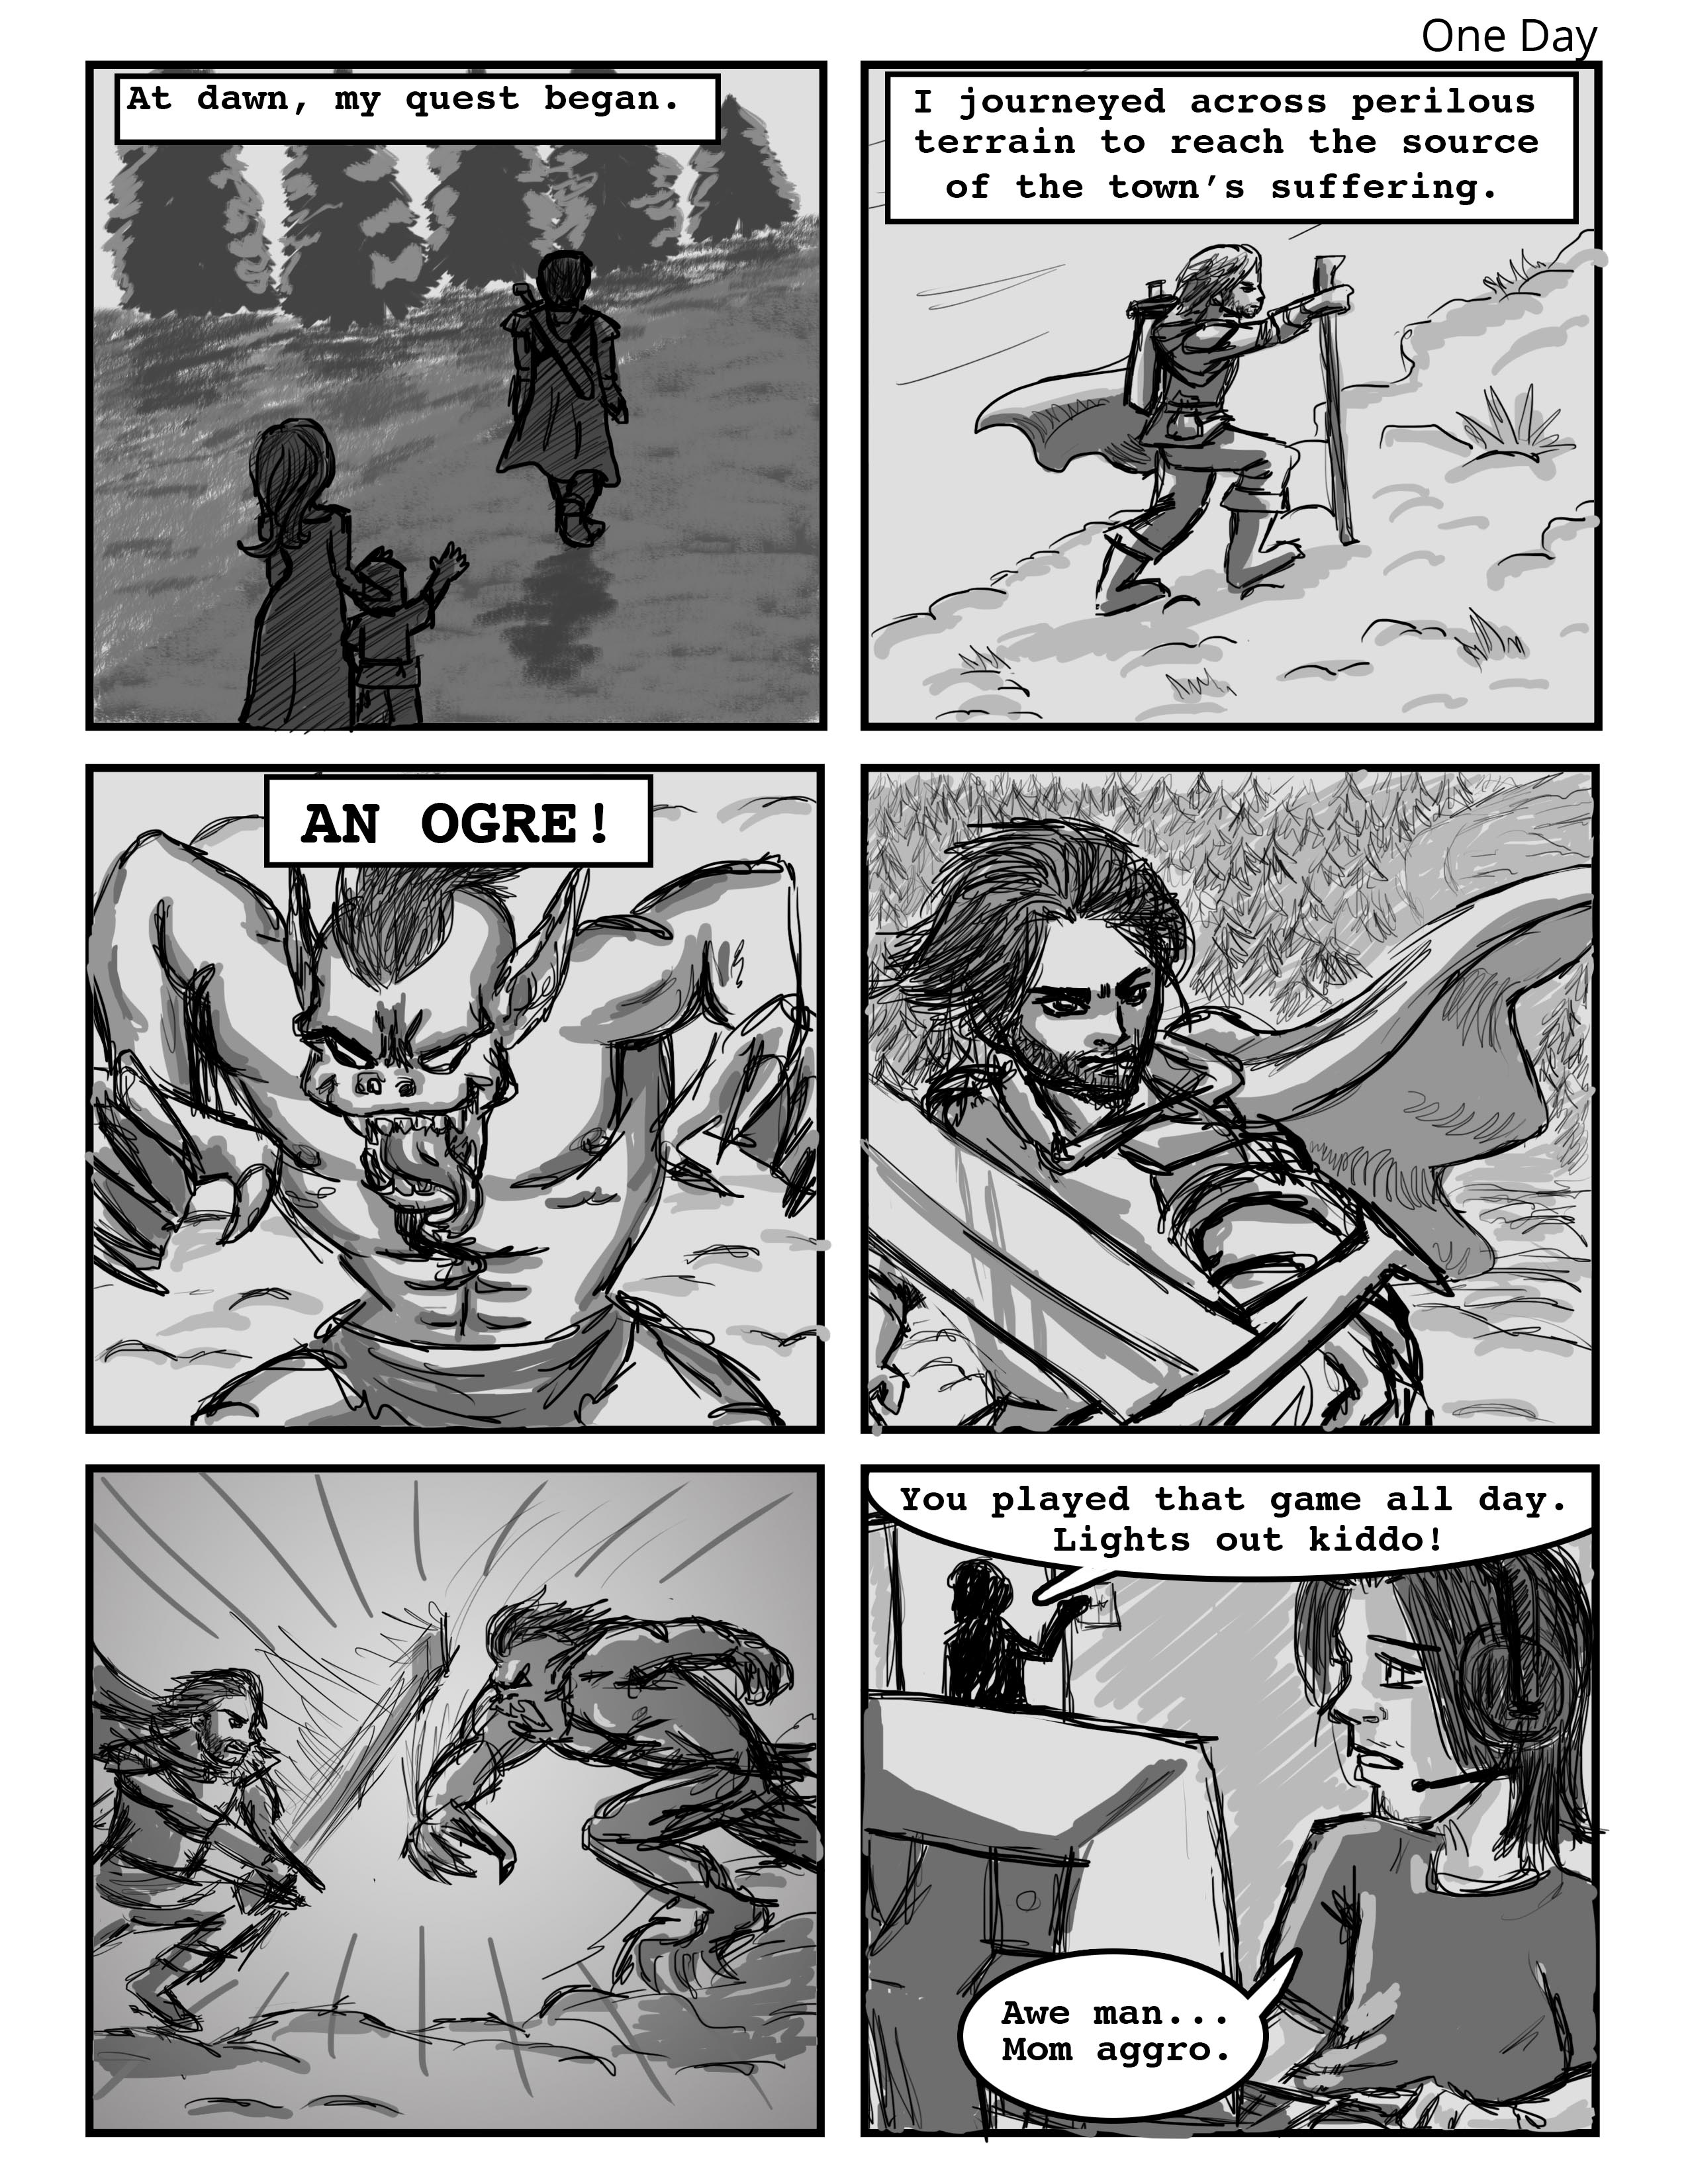 One Day Comic